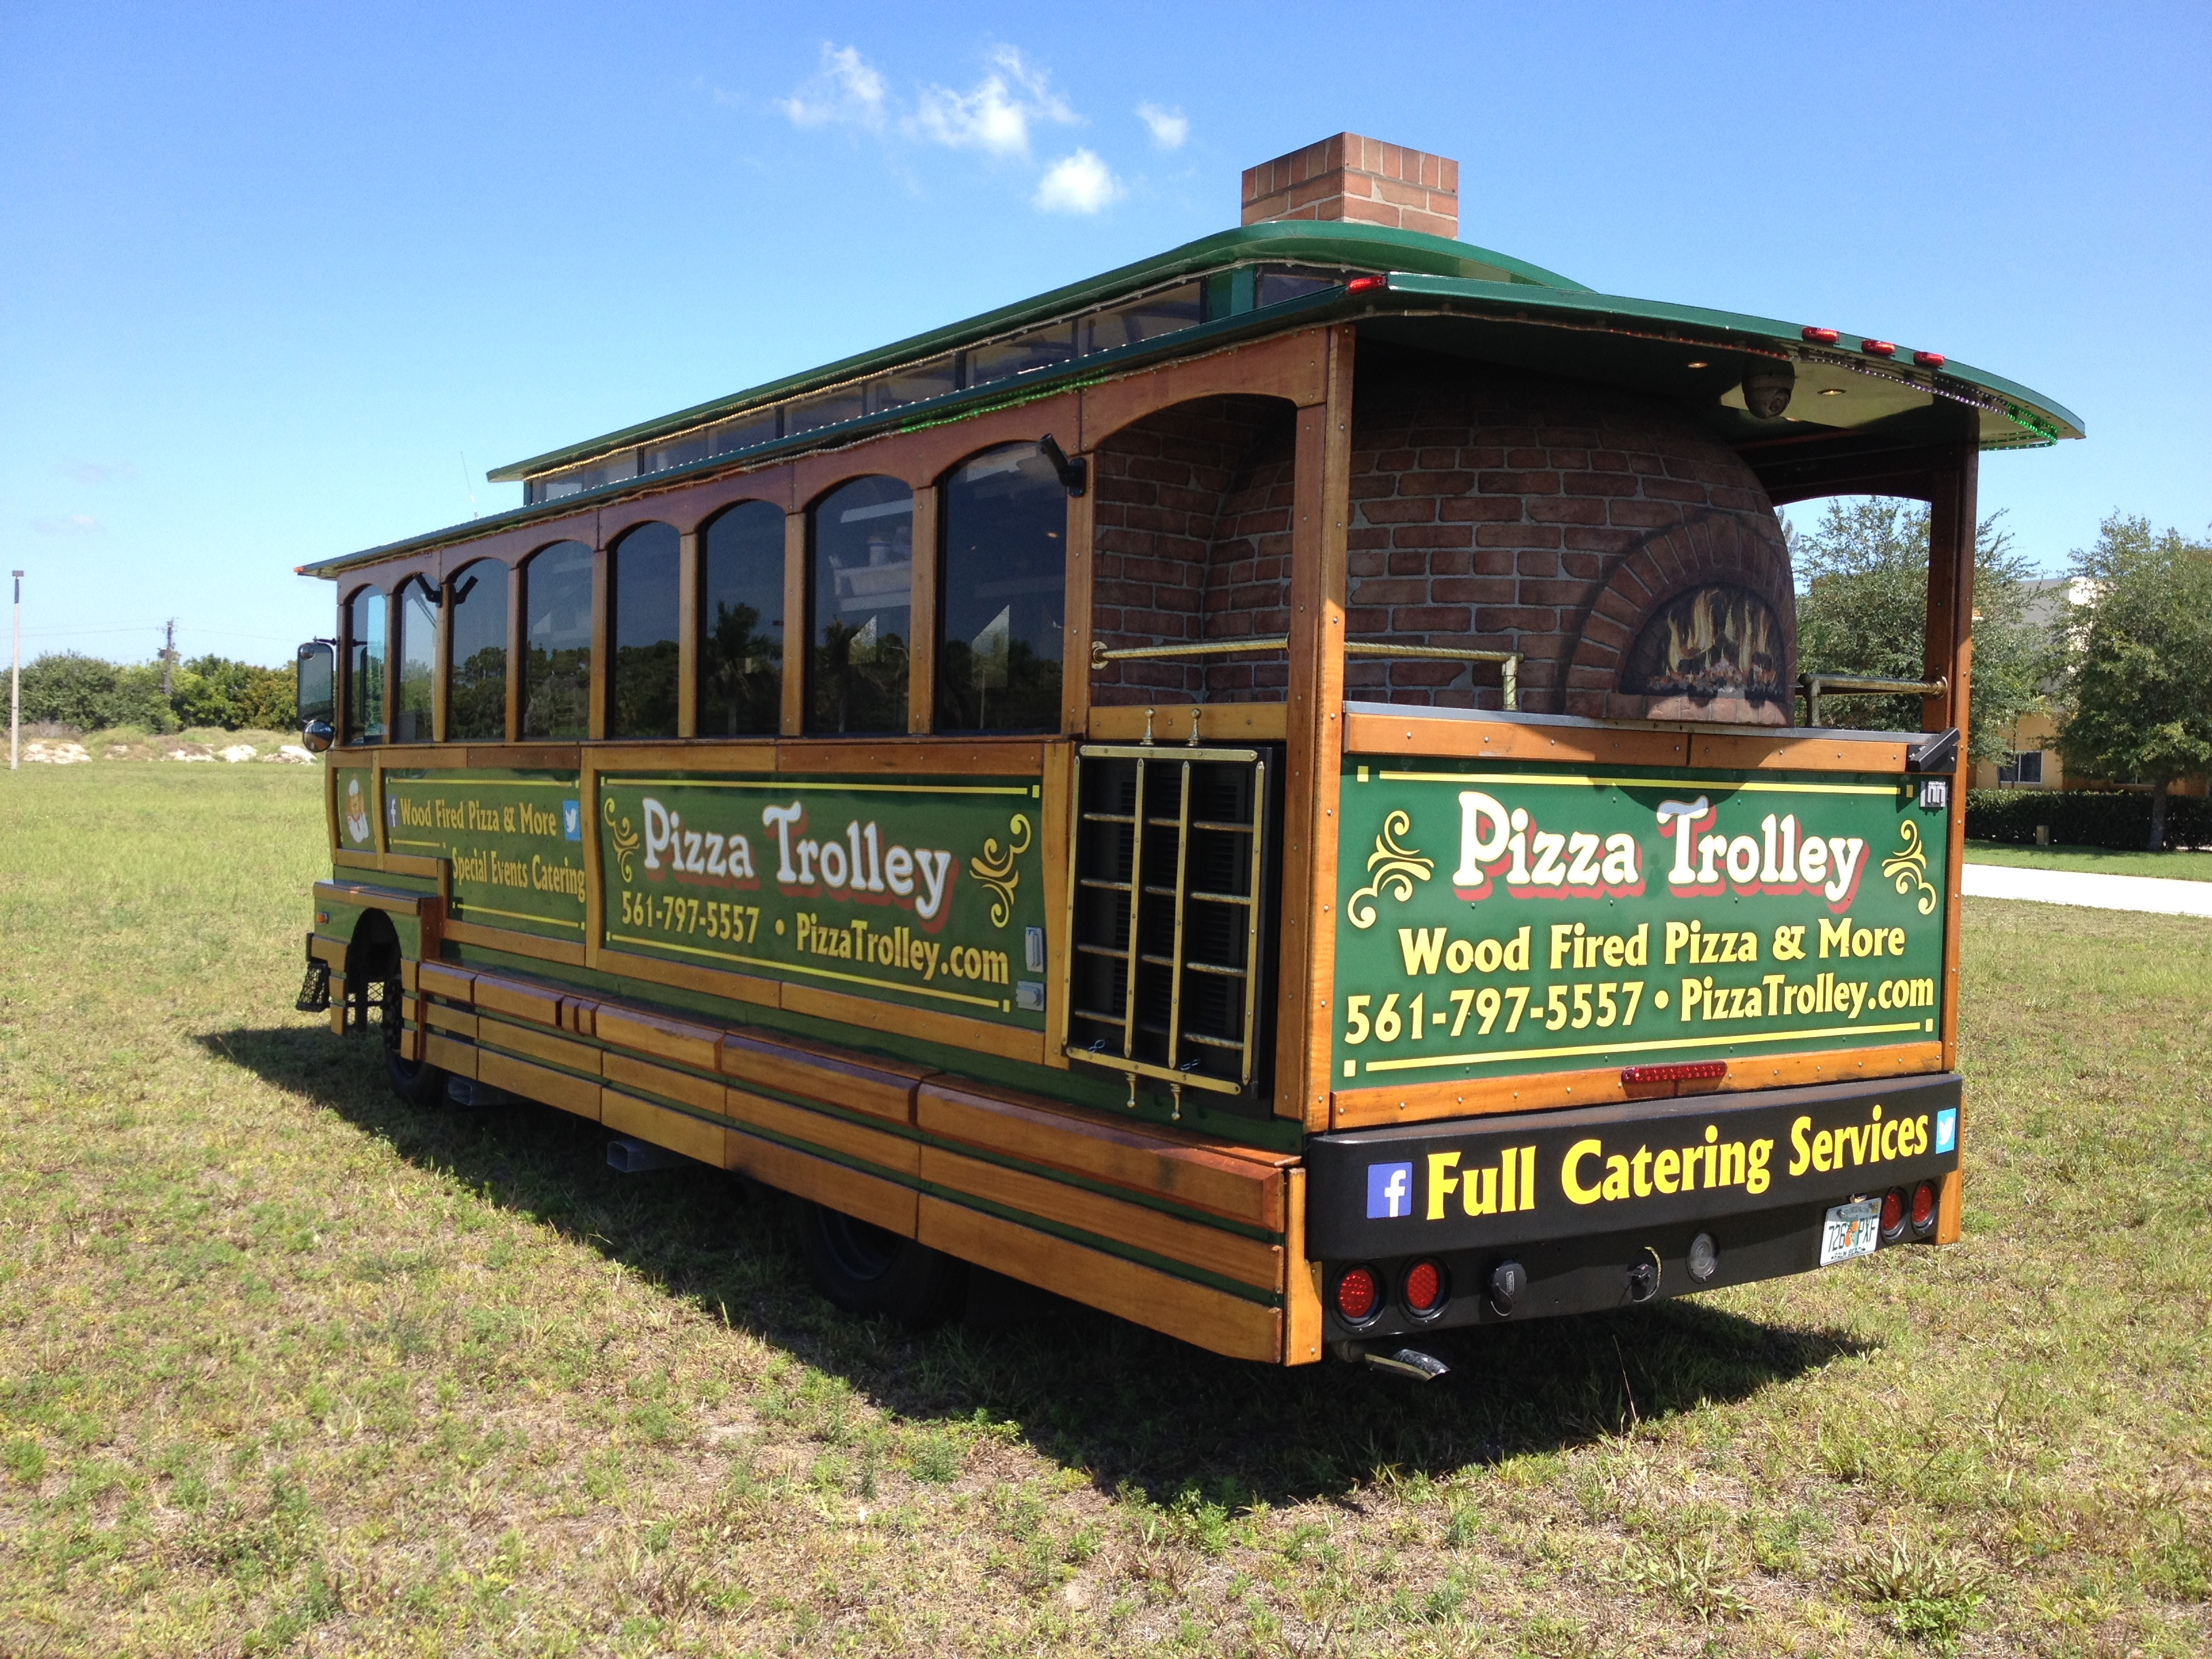 cef2e18c1f The Pizza Trolley Is for Sale - Legends of Pizza Blog